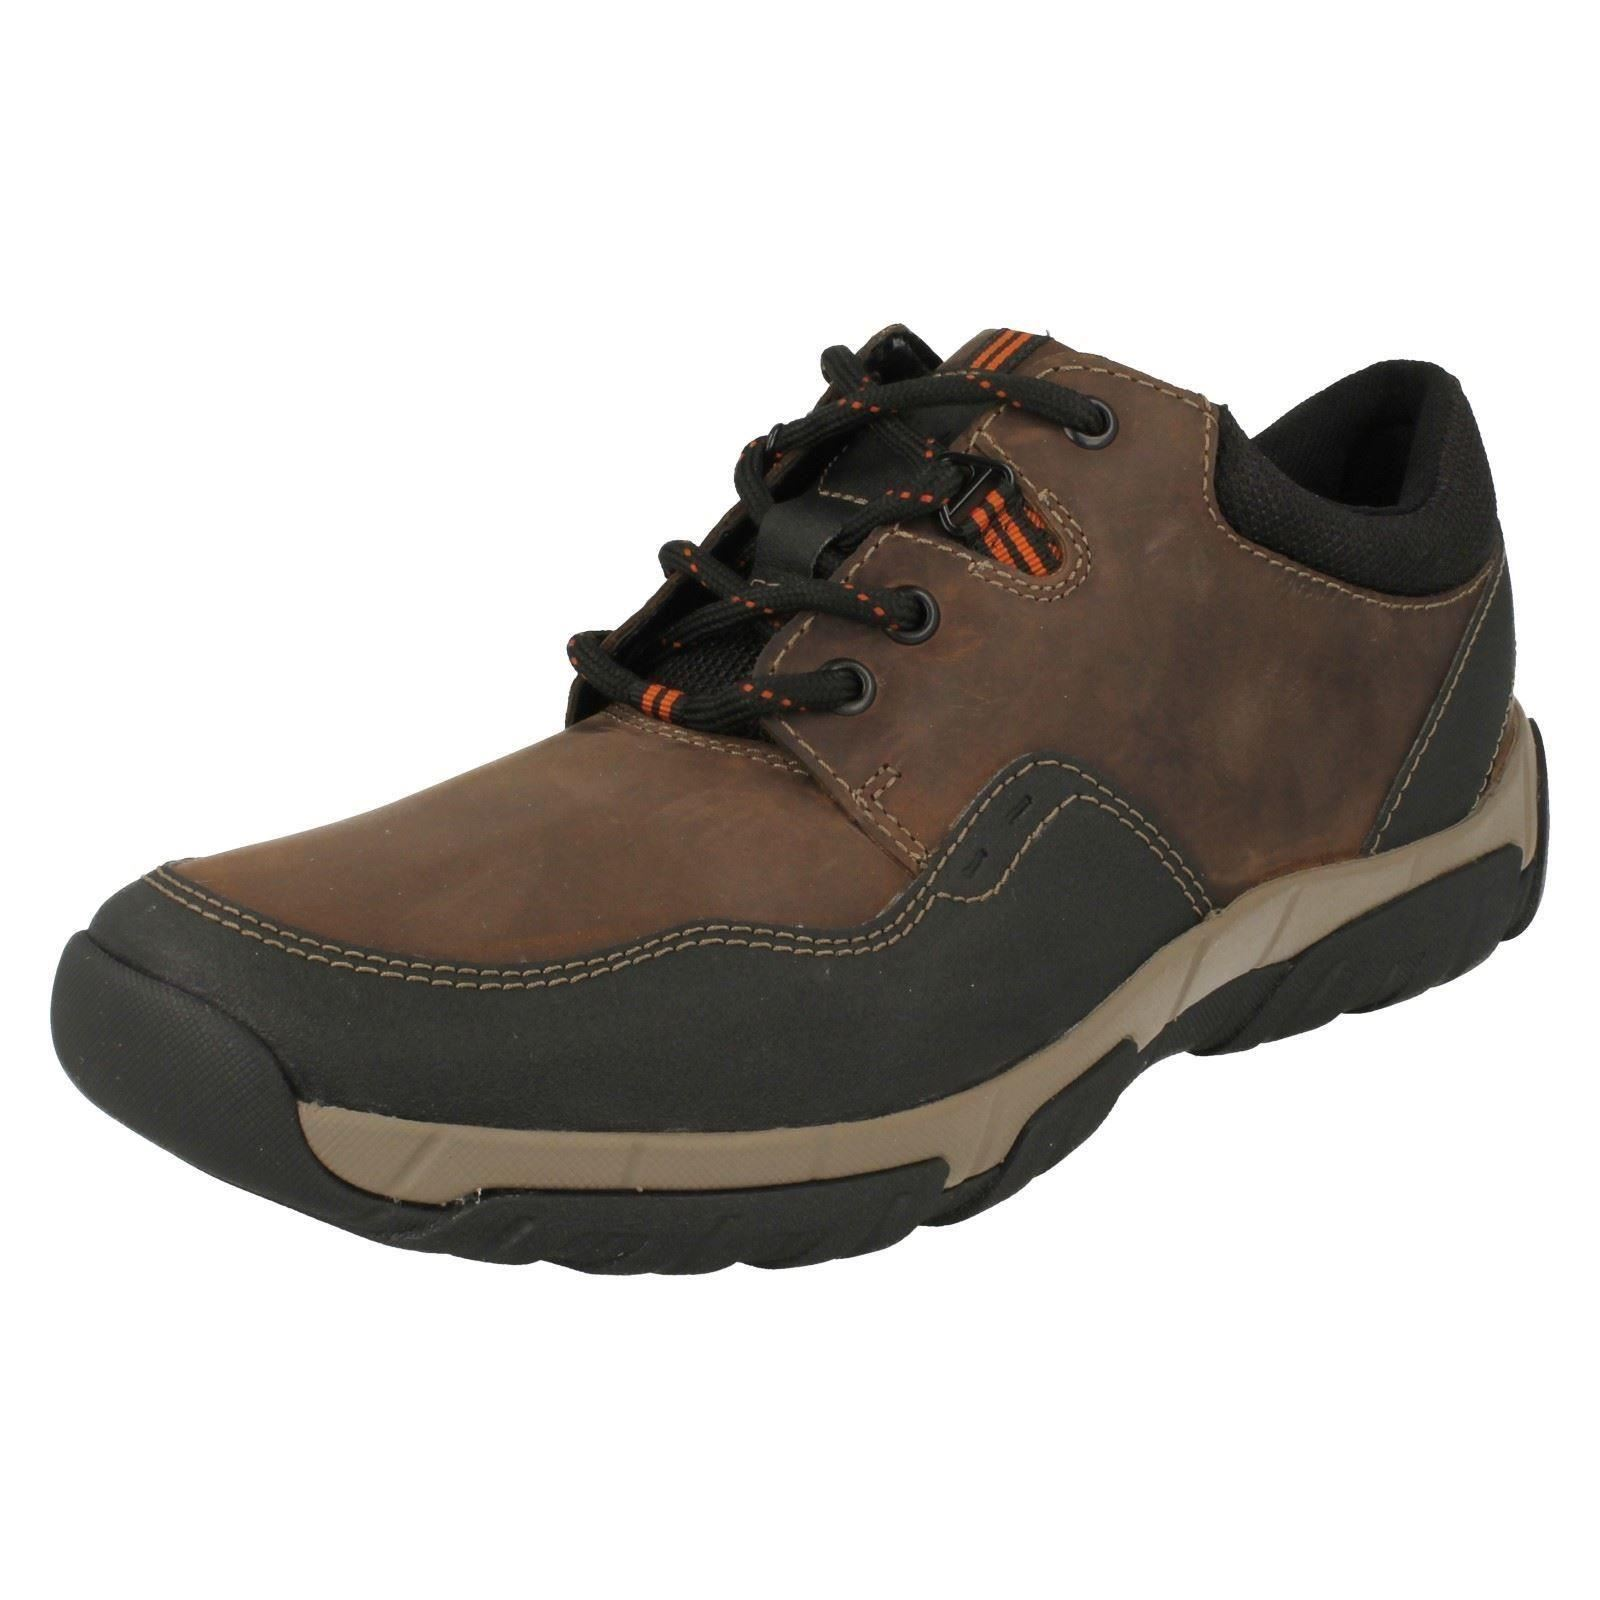 Uomo Clarks Schuhes Casual Waterproof Lace Up Schuhes Clarks Walbeck Edge 108ba9